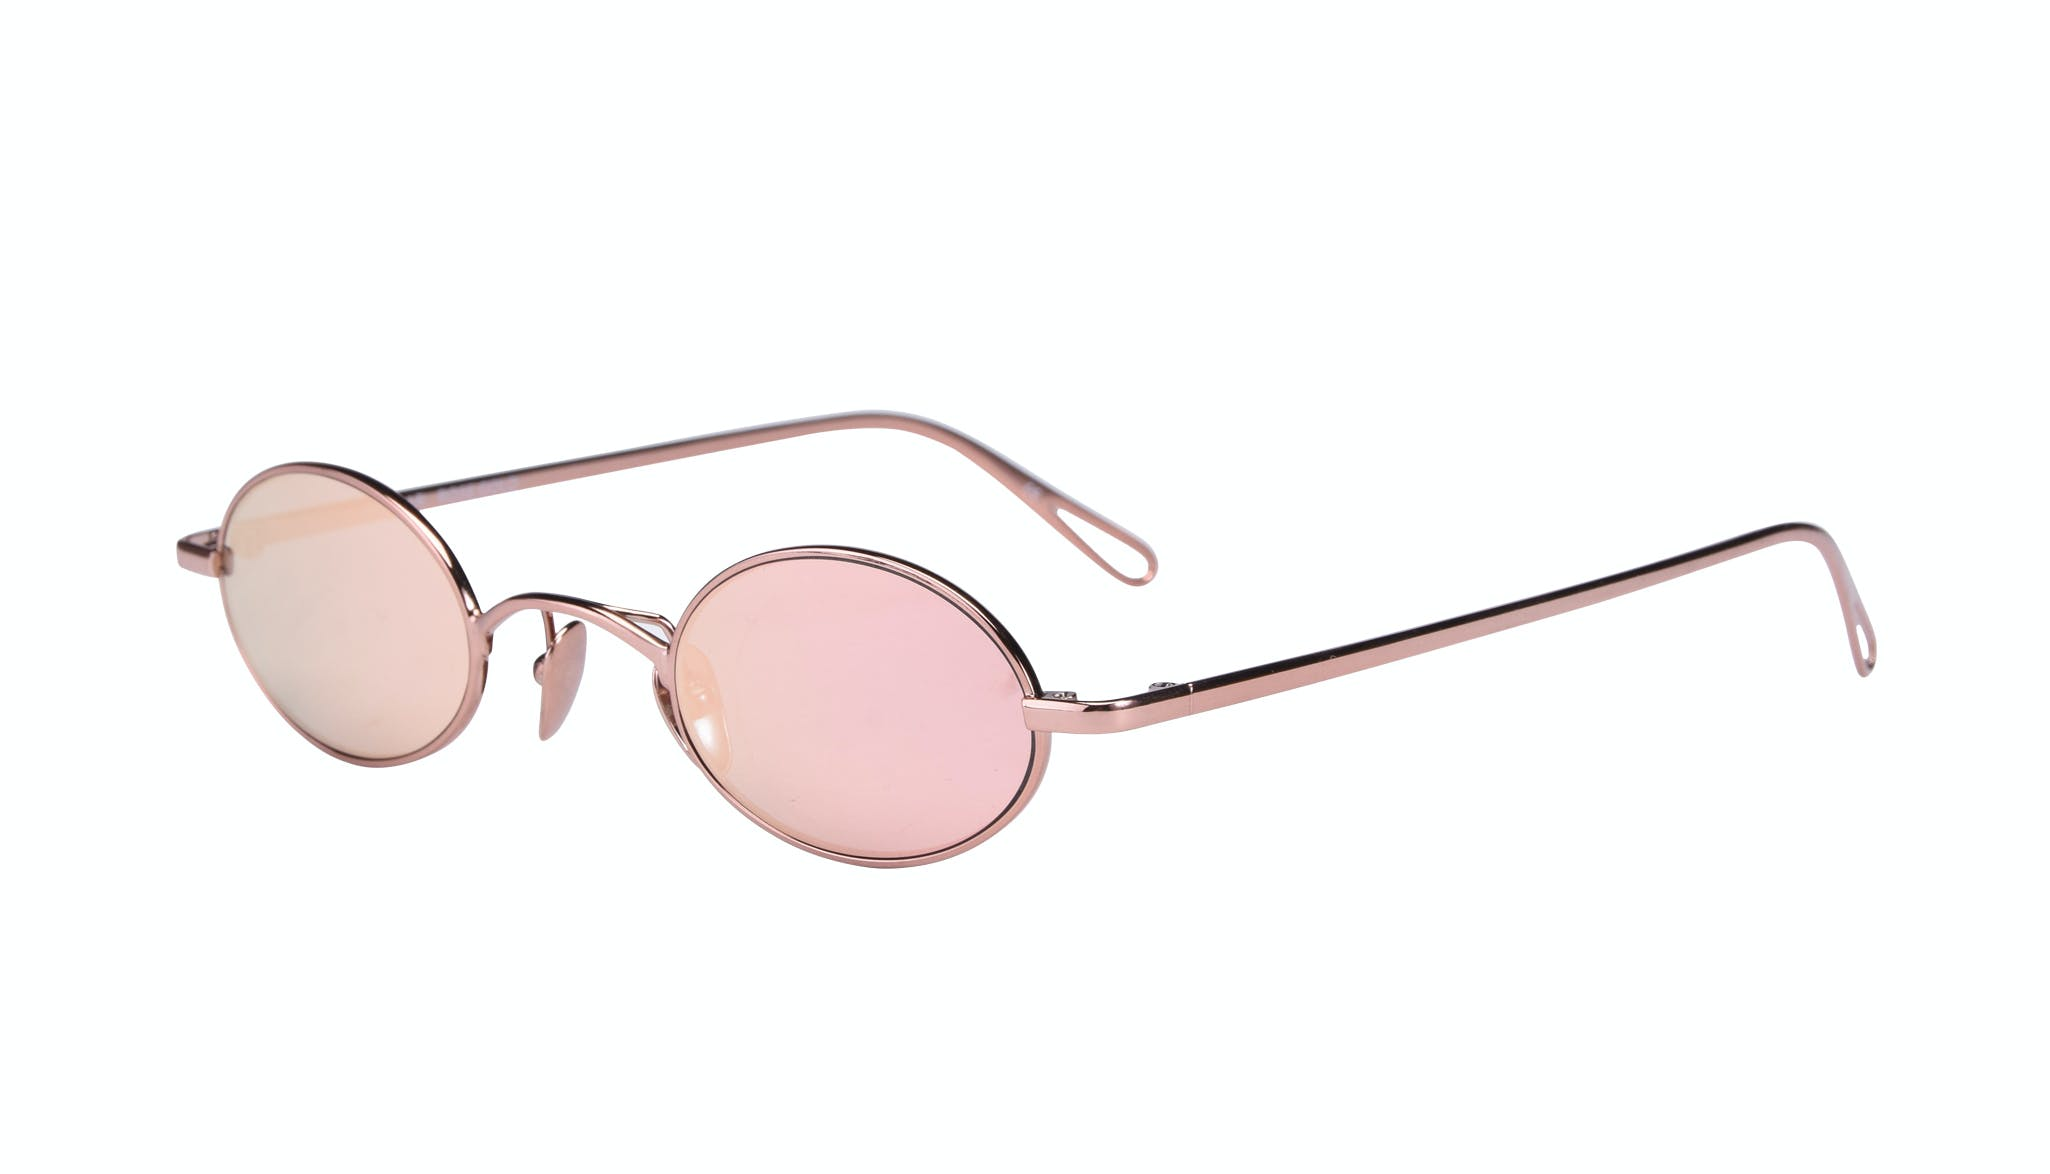 Affordable Fashion Glasses Round Sunglasses Women Stellar Rose Gold Tilt